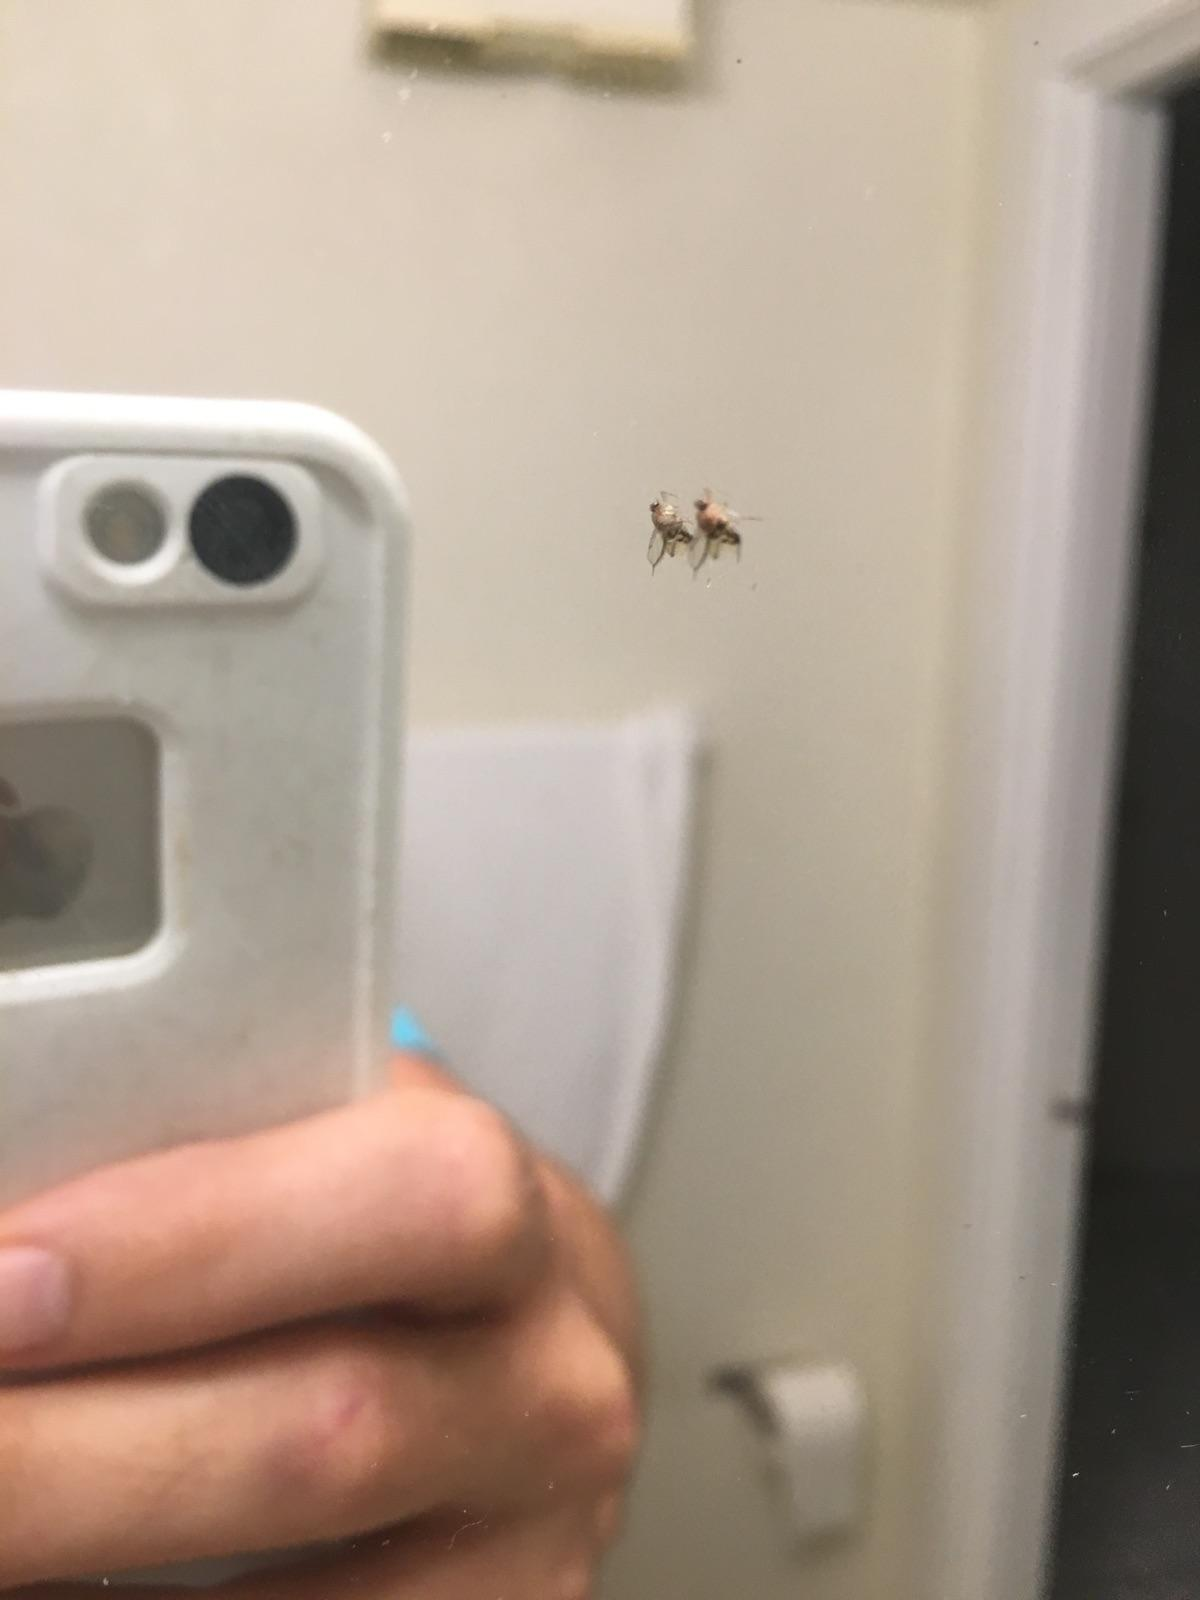 Over 60 confirmed insect kills in 2 days!